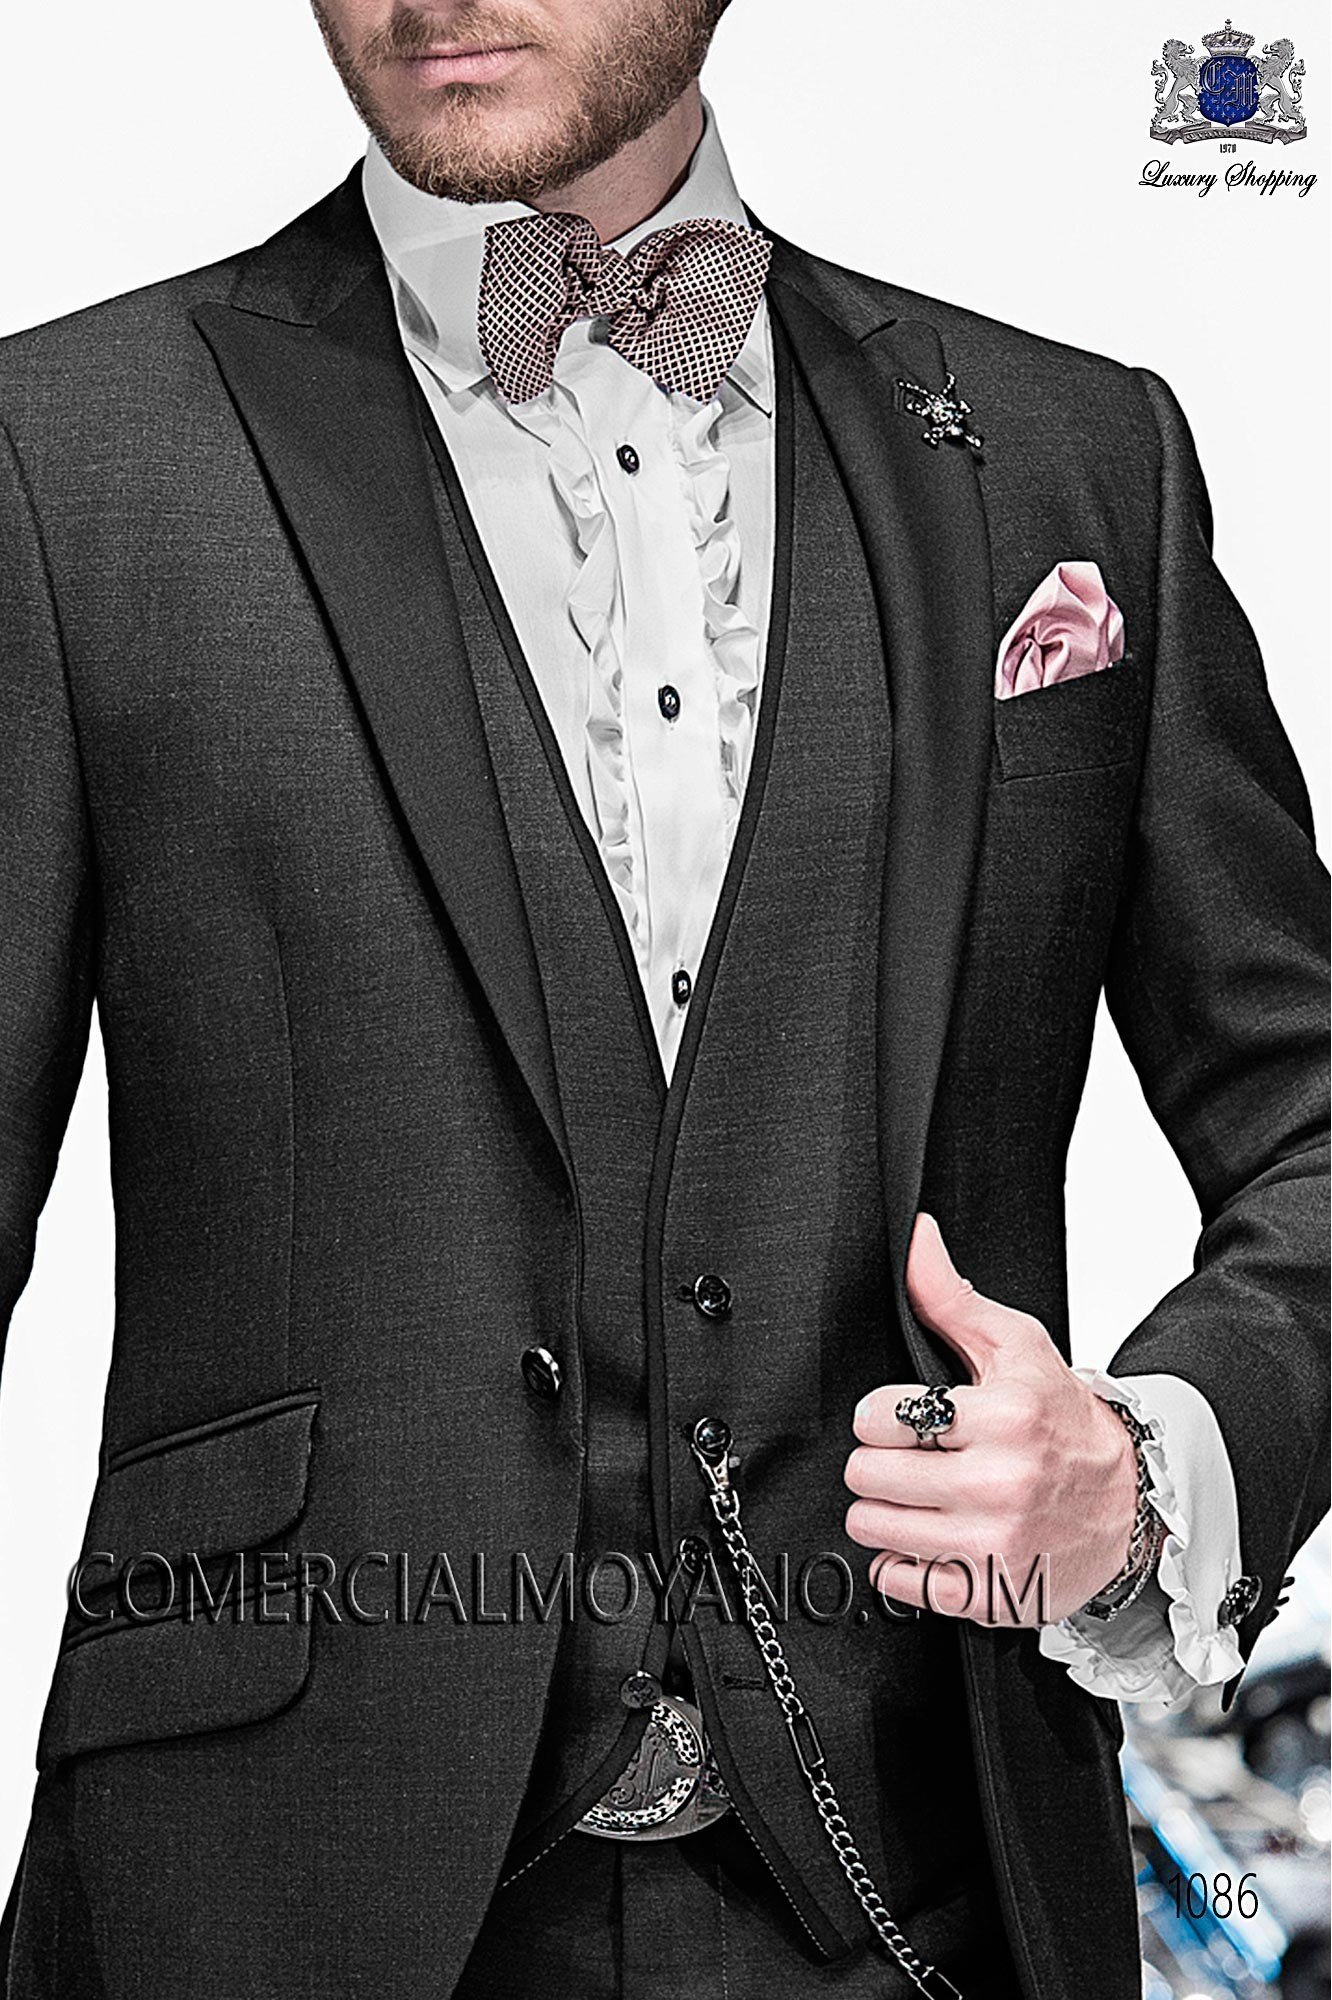 Italian emotion black men wedding suit, model: 1086 Ottavio Nuccio Gala Emotion Collection